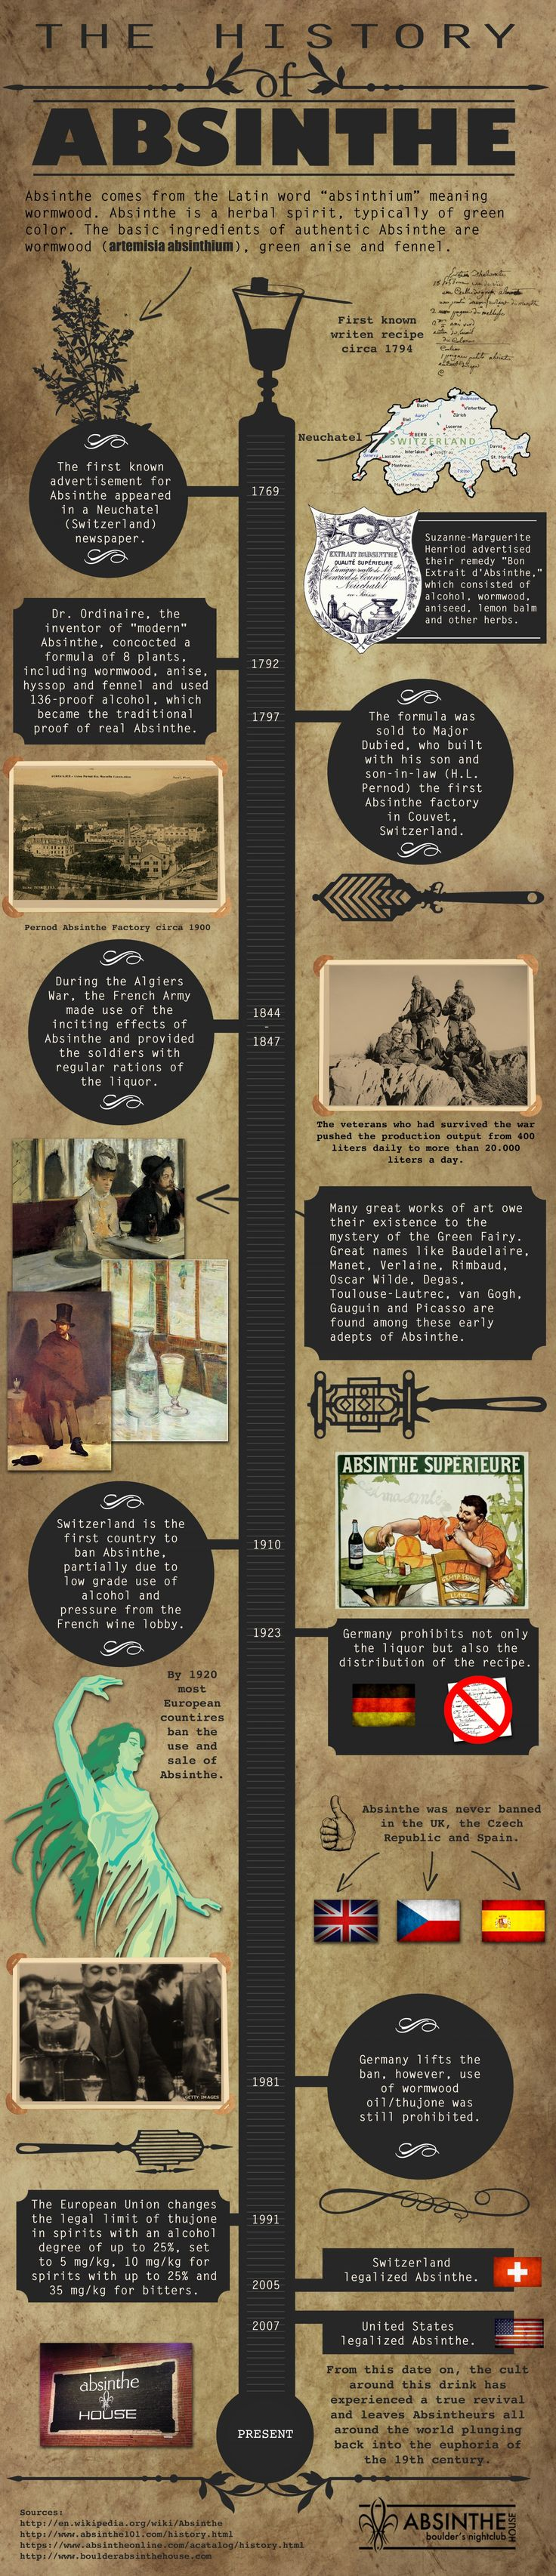 The History of Absinthe Infographic. Nice to see something like this being mostly accurate: there is a lot of misinformation elsewhere!: